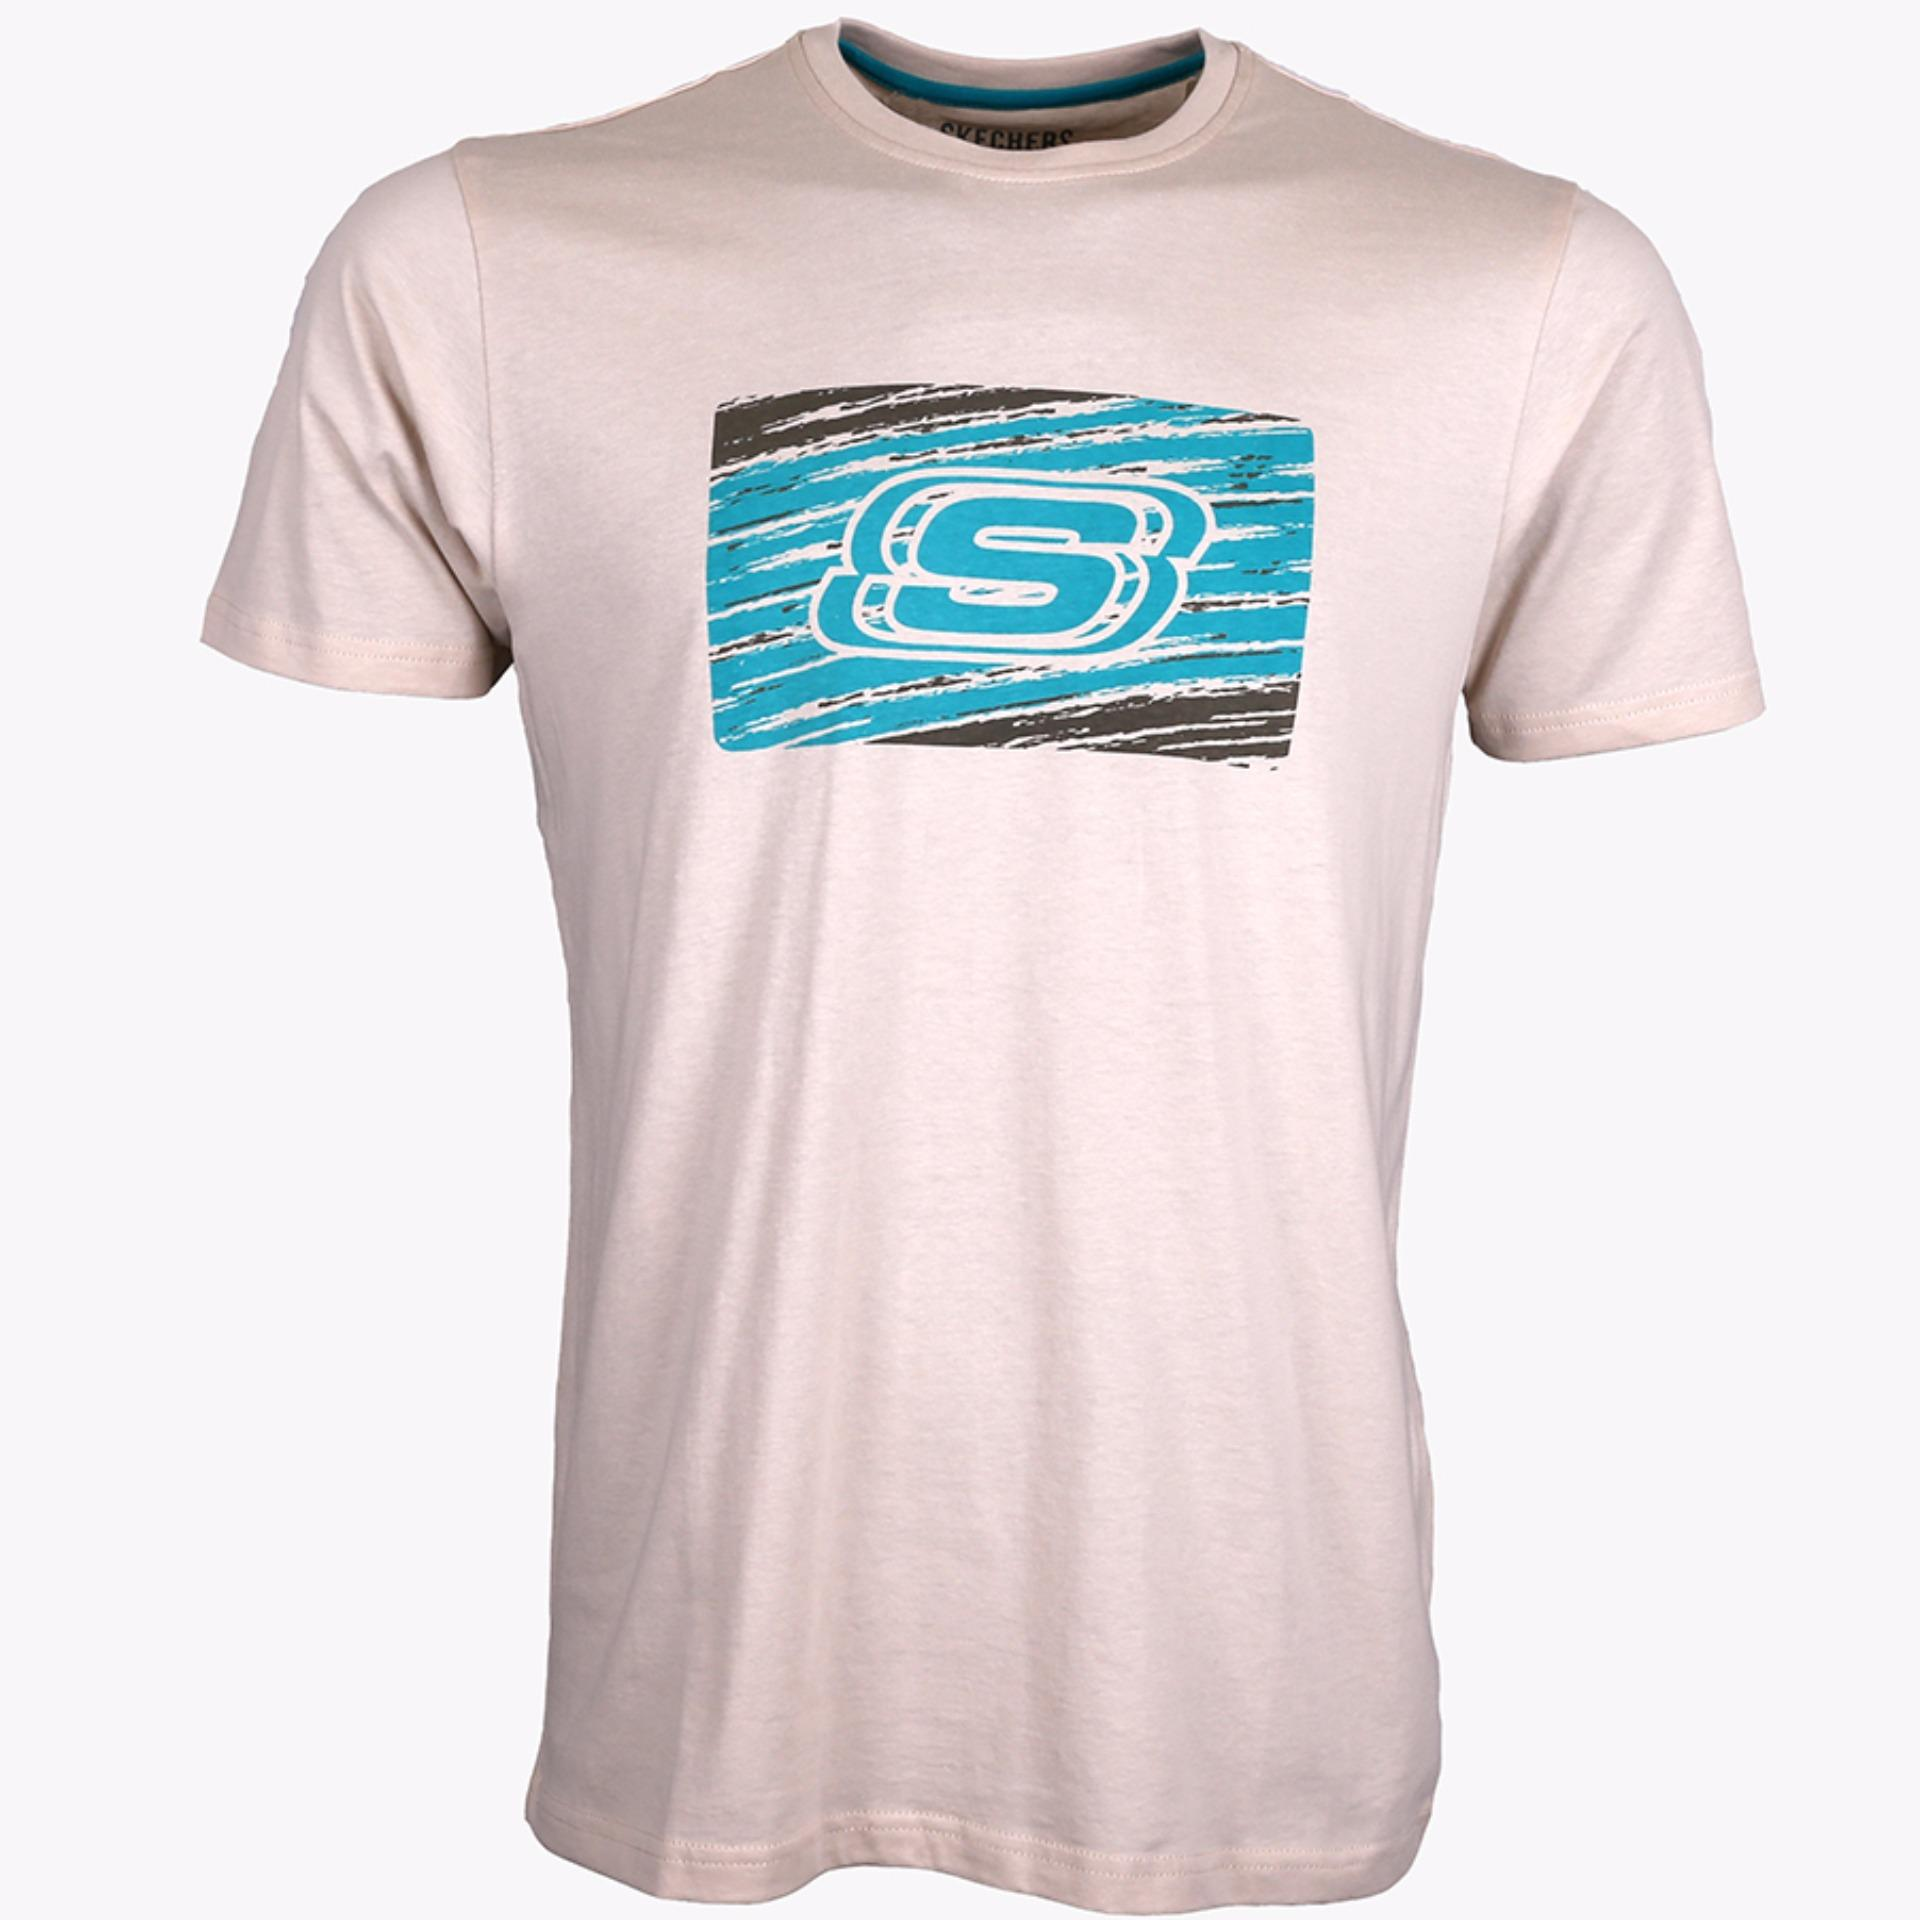 Harga Skechers Men S Graphic Tee Beige